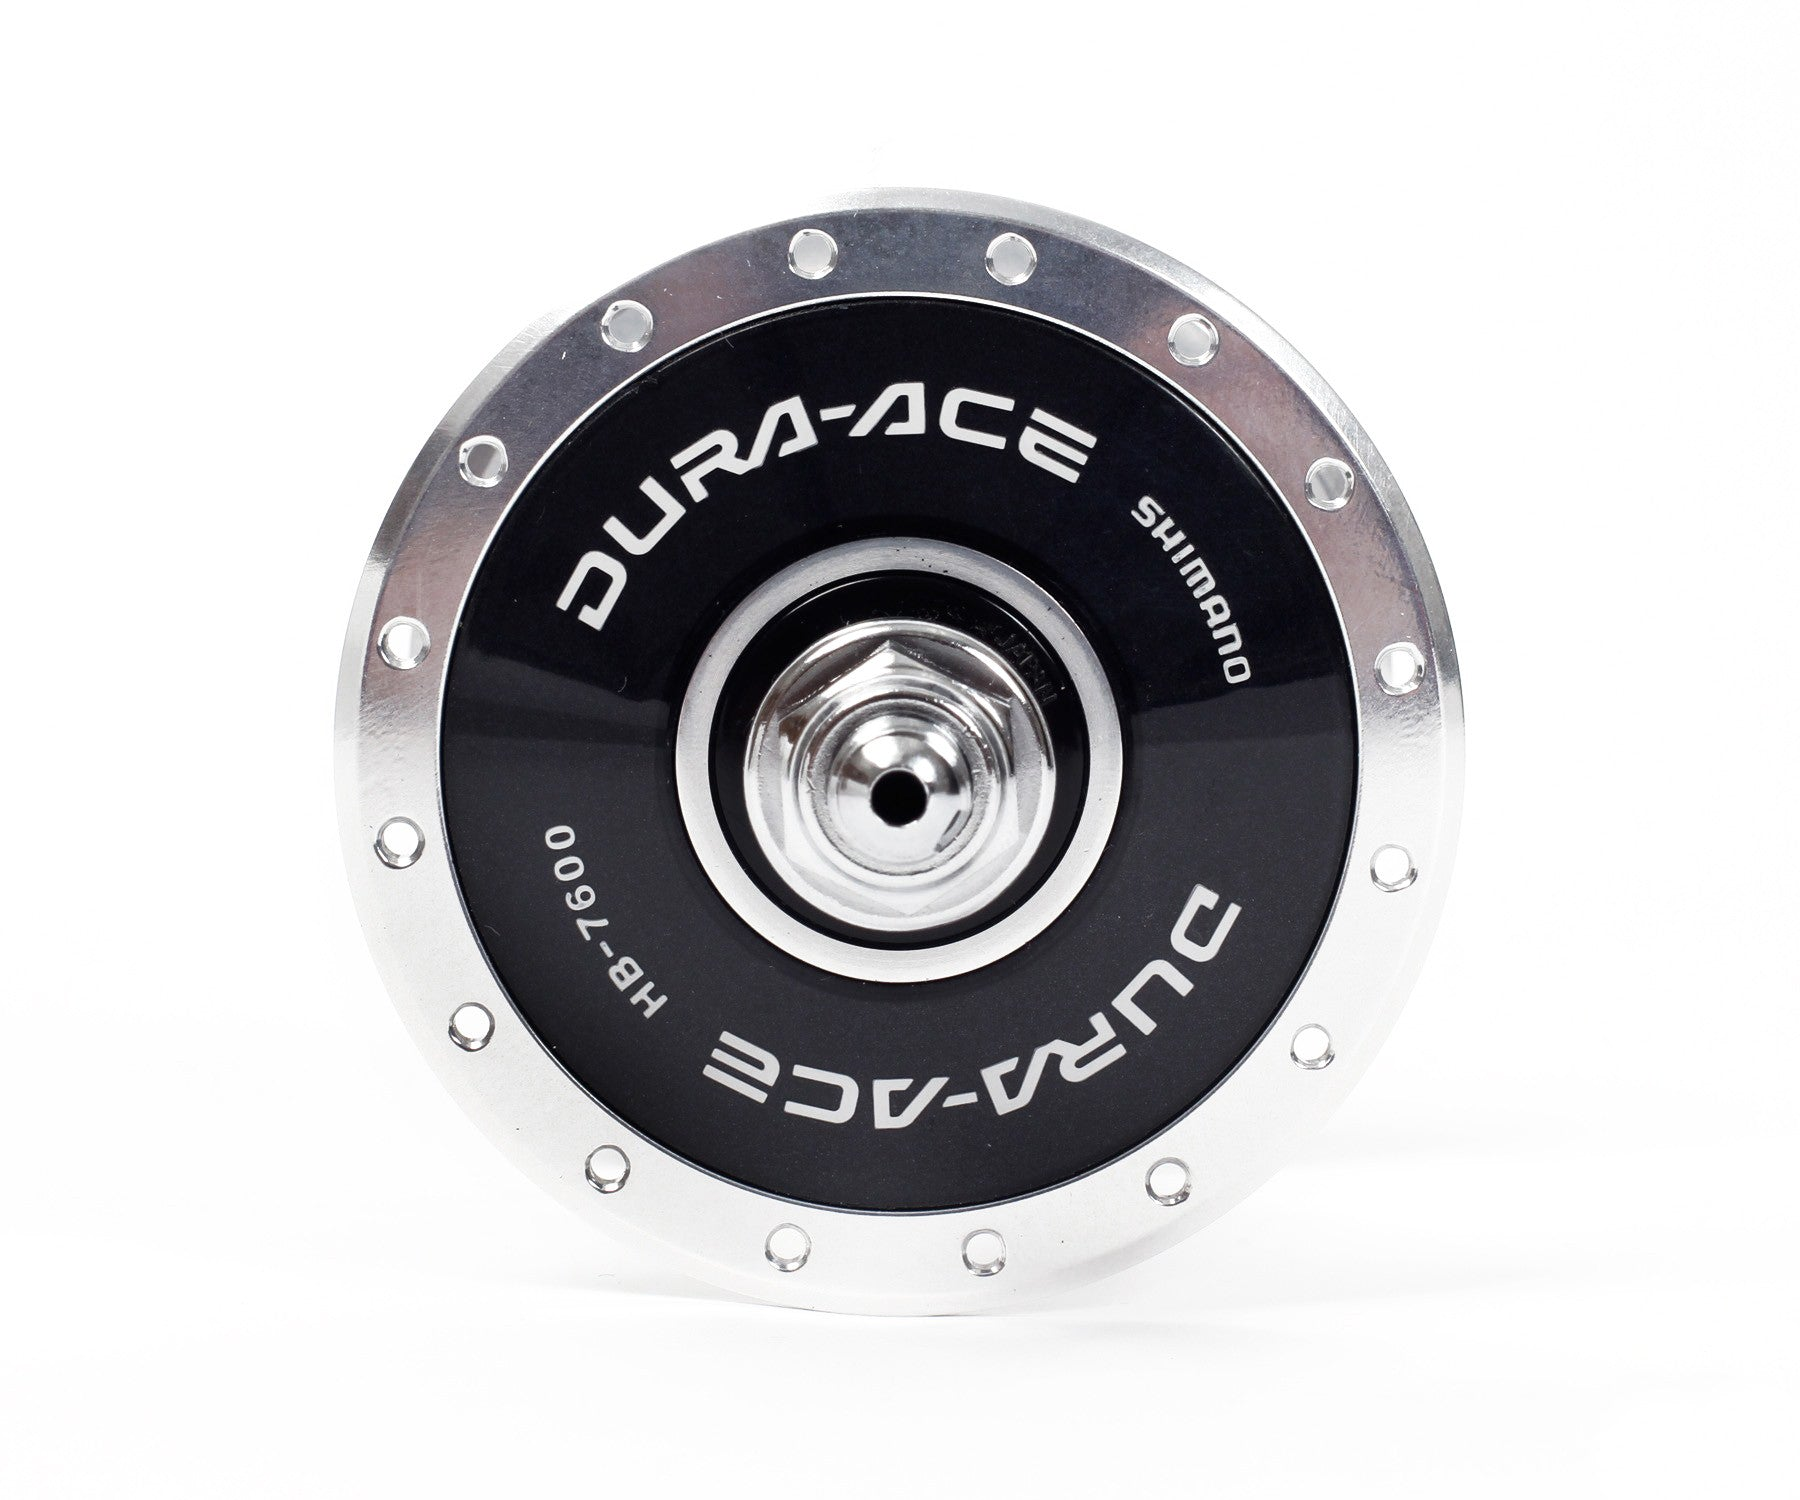 Shimano Dura Ace 7600 front track hub